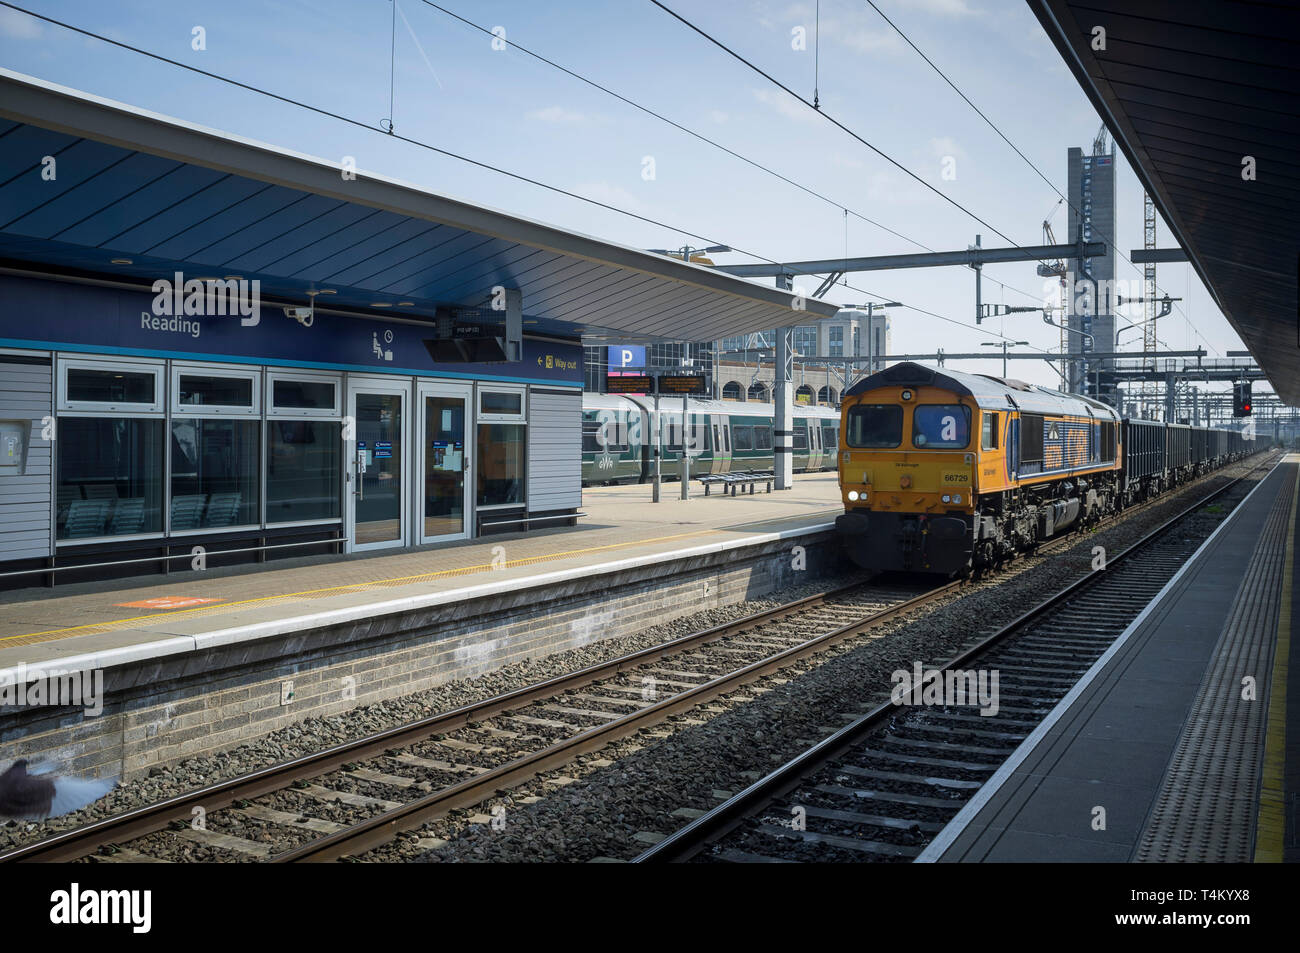 A freight train pulls into Reading Station Stock Photo